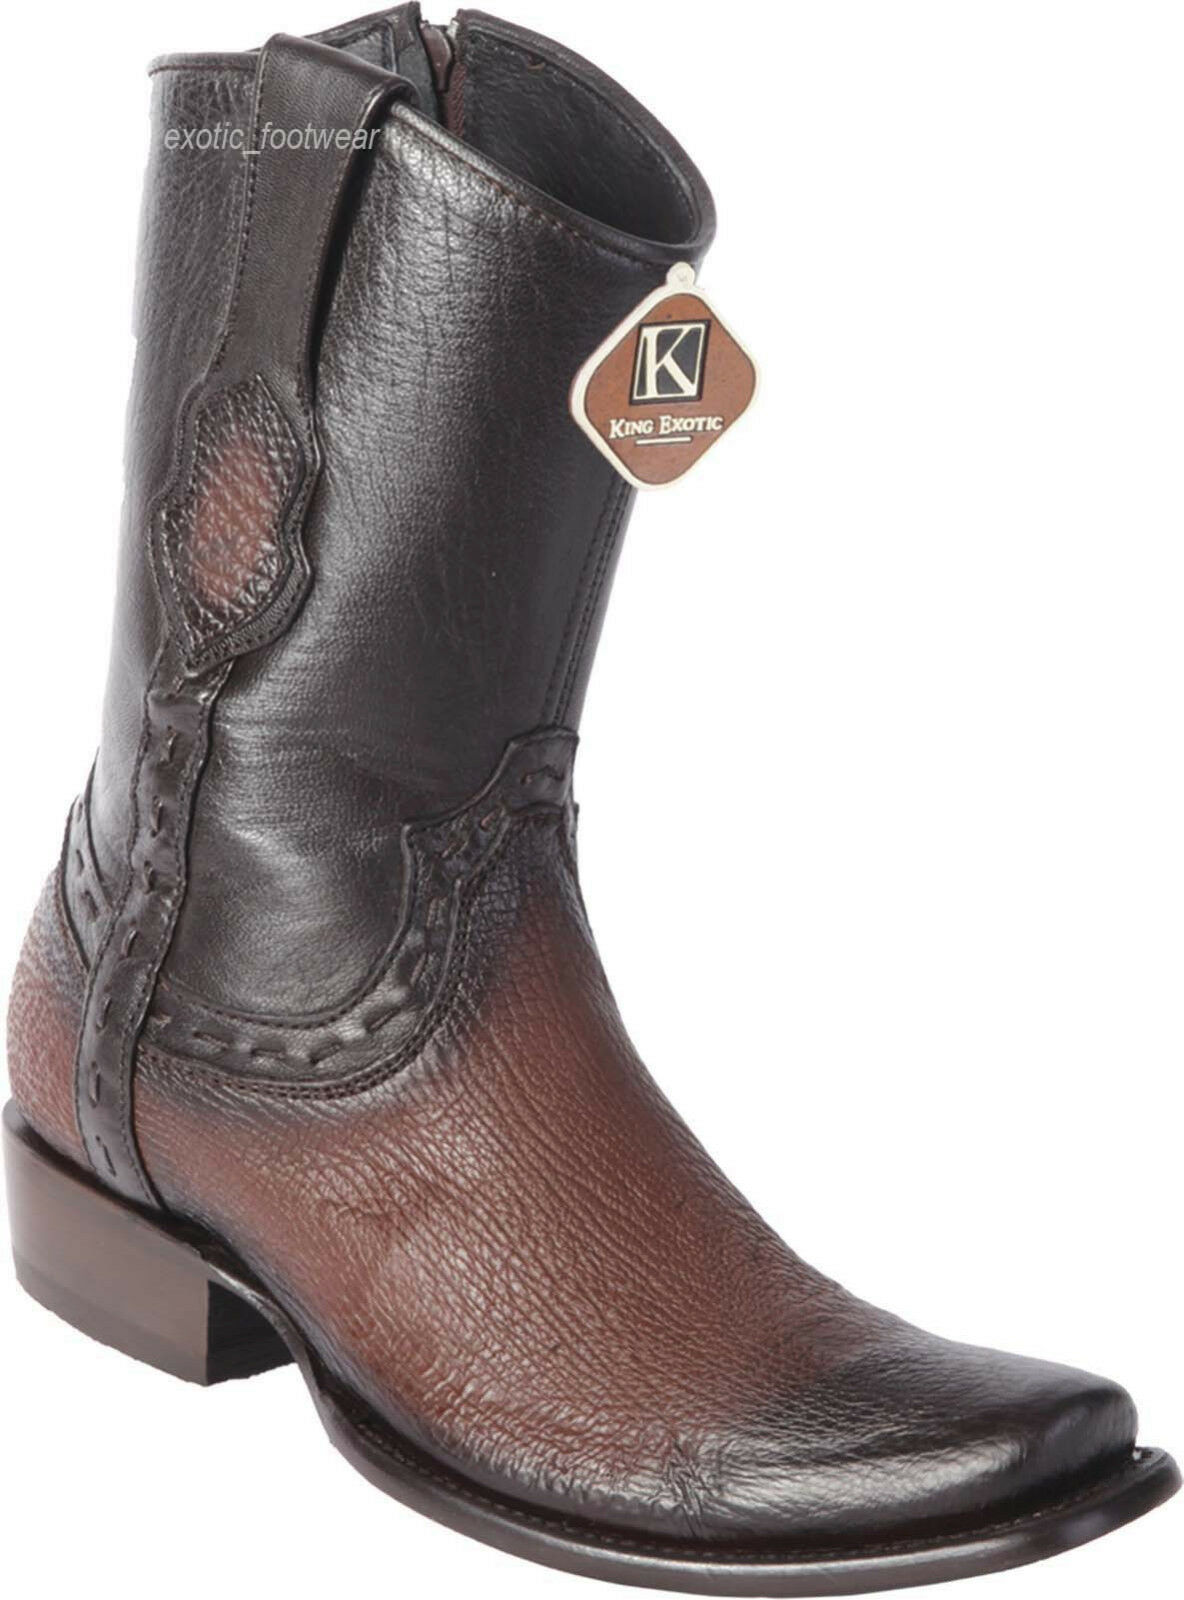 Men's King Exotic Genuine Shark Skin Western Boots Inside Zipper Mid Calf